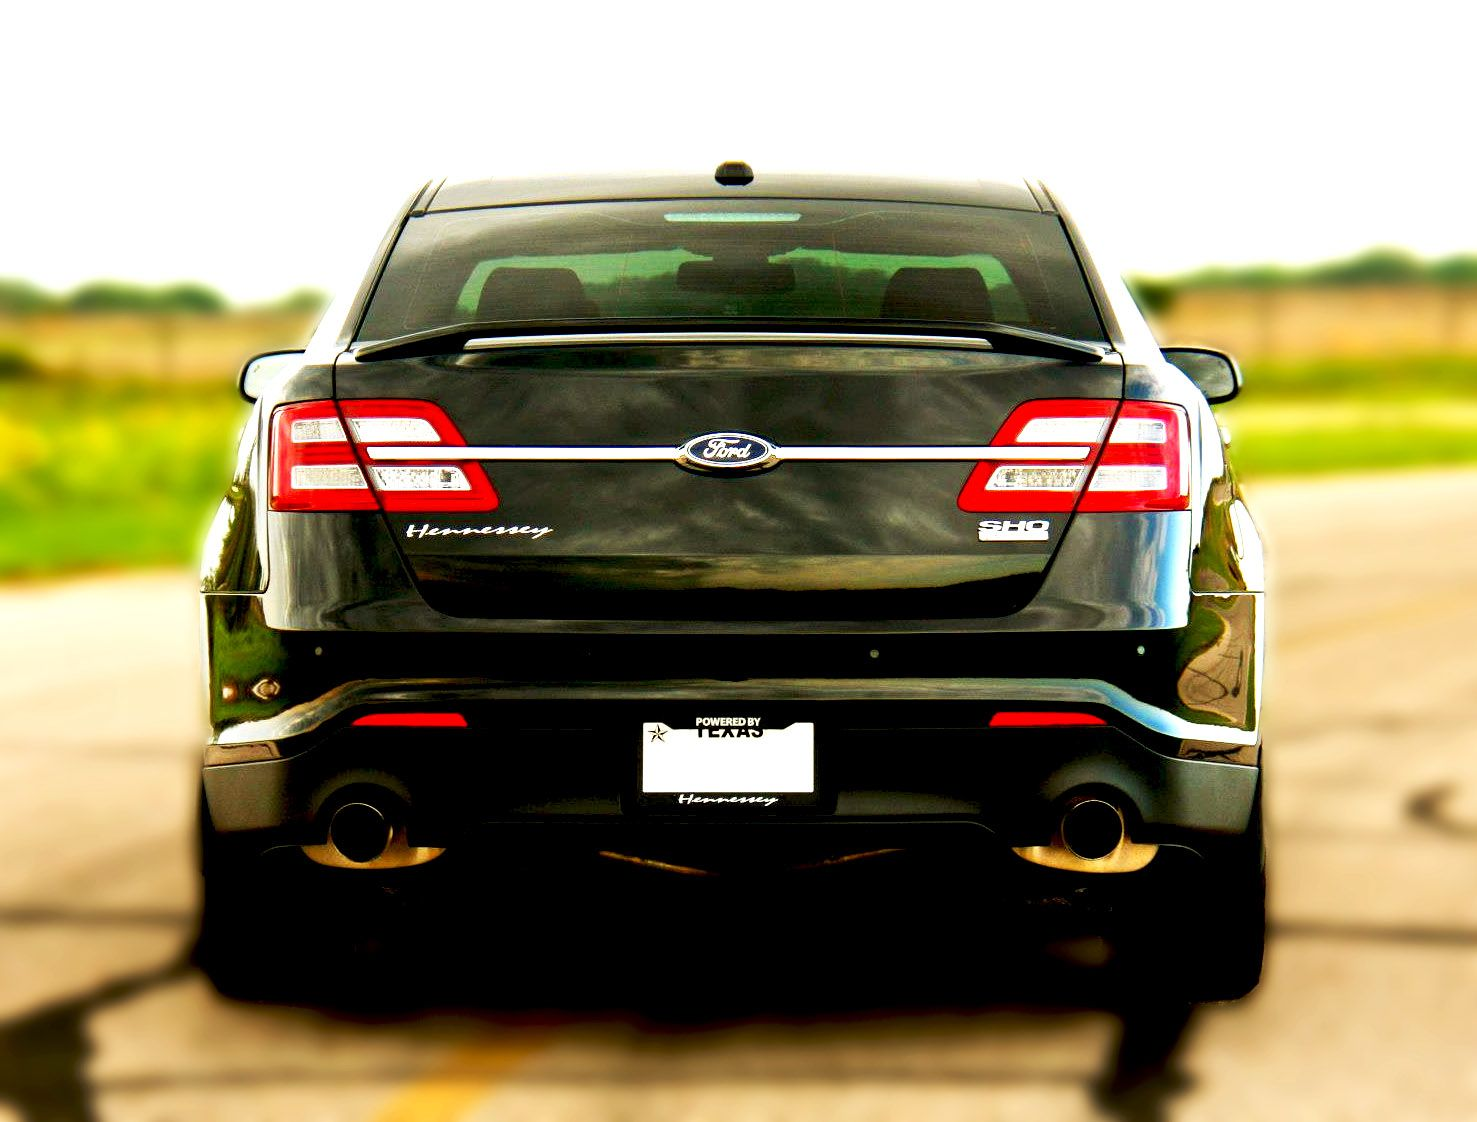 Hennessey built 2013 Ford Taurus SHO - 445 HP | Ford Through the ...